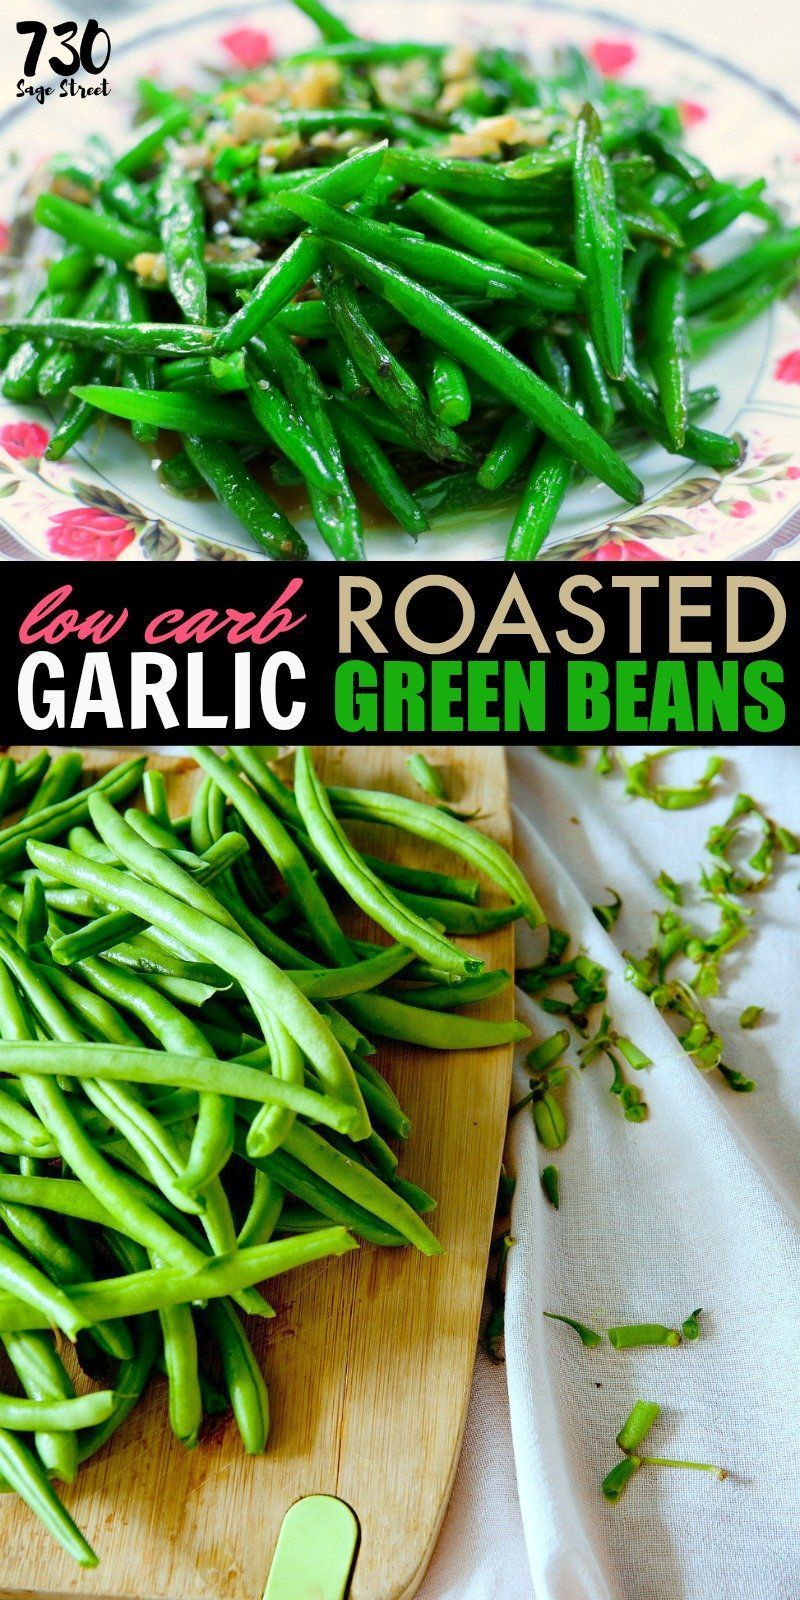 Green Beans This easy garlic green beans recipe makes a delicious low carb summer side dish.This easy garlic green beans recipe makes a delicious low carb summer side dish.